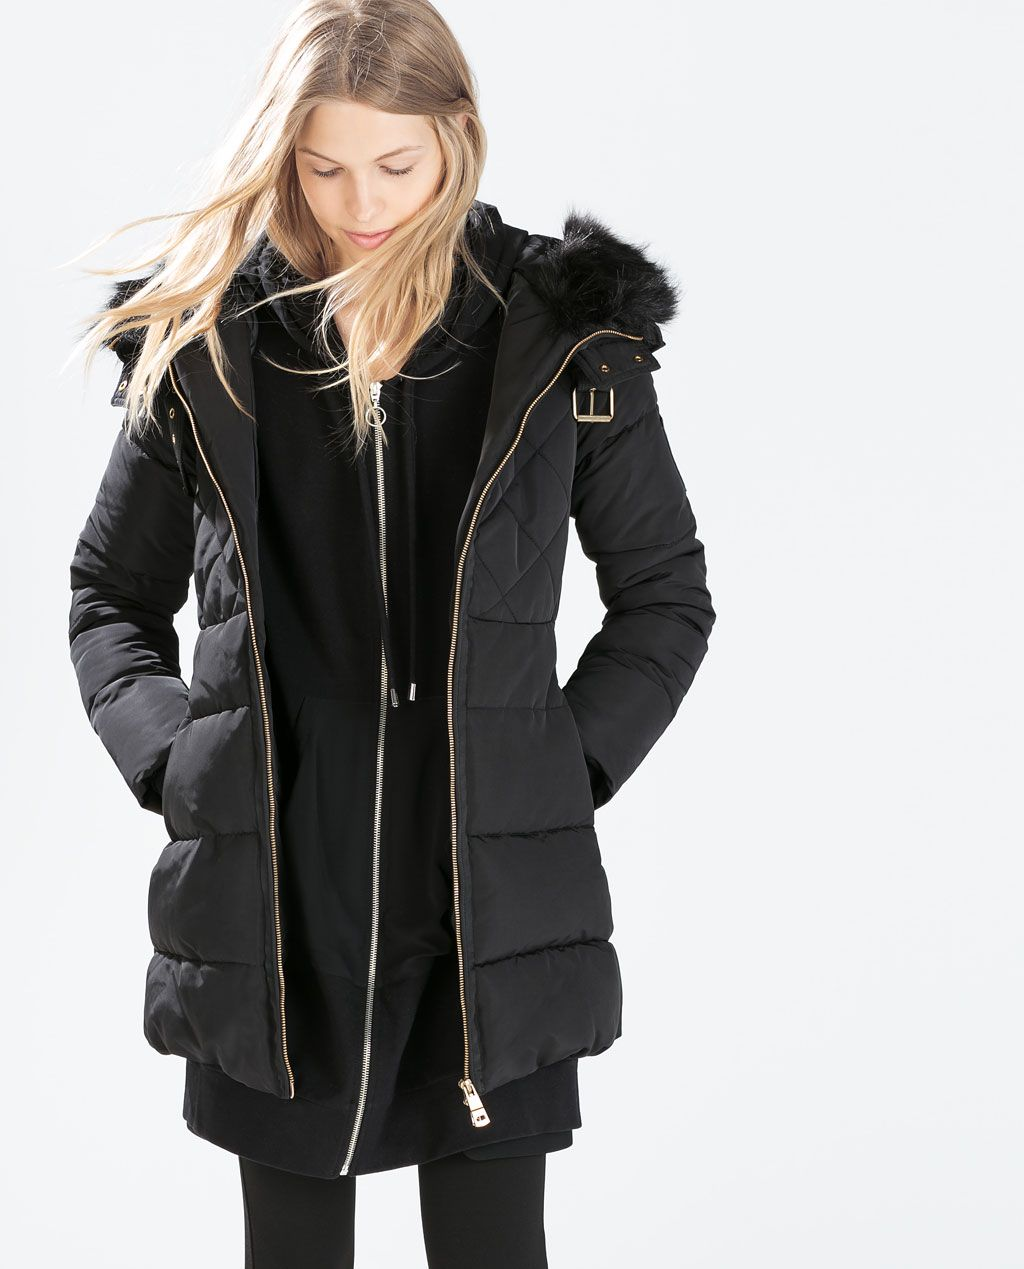 2c96340341fd Image 1 of MID-LENGTH DOWN JACKET WITH FUR COLLAR from Zara £79.99 on the  quest for a warm coat